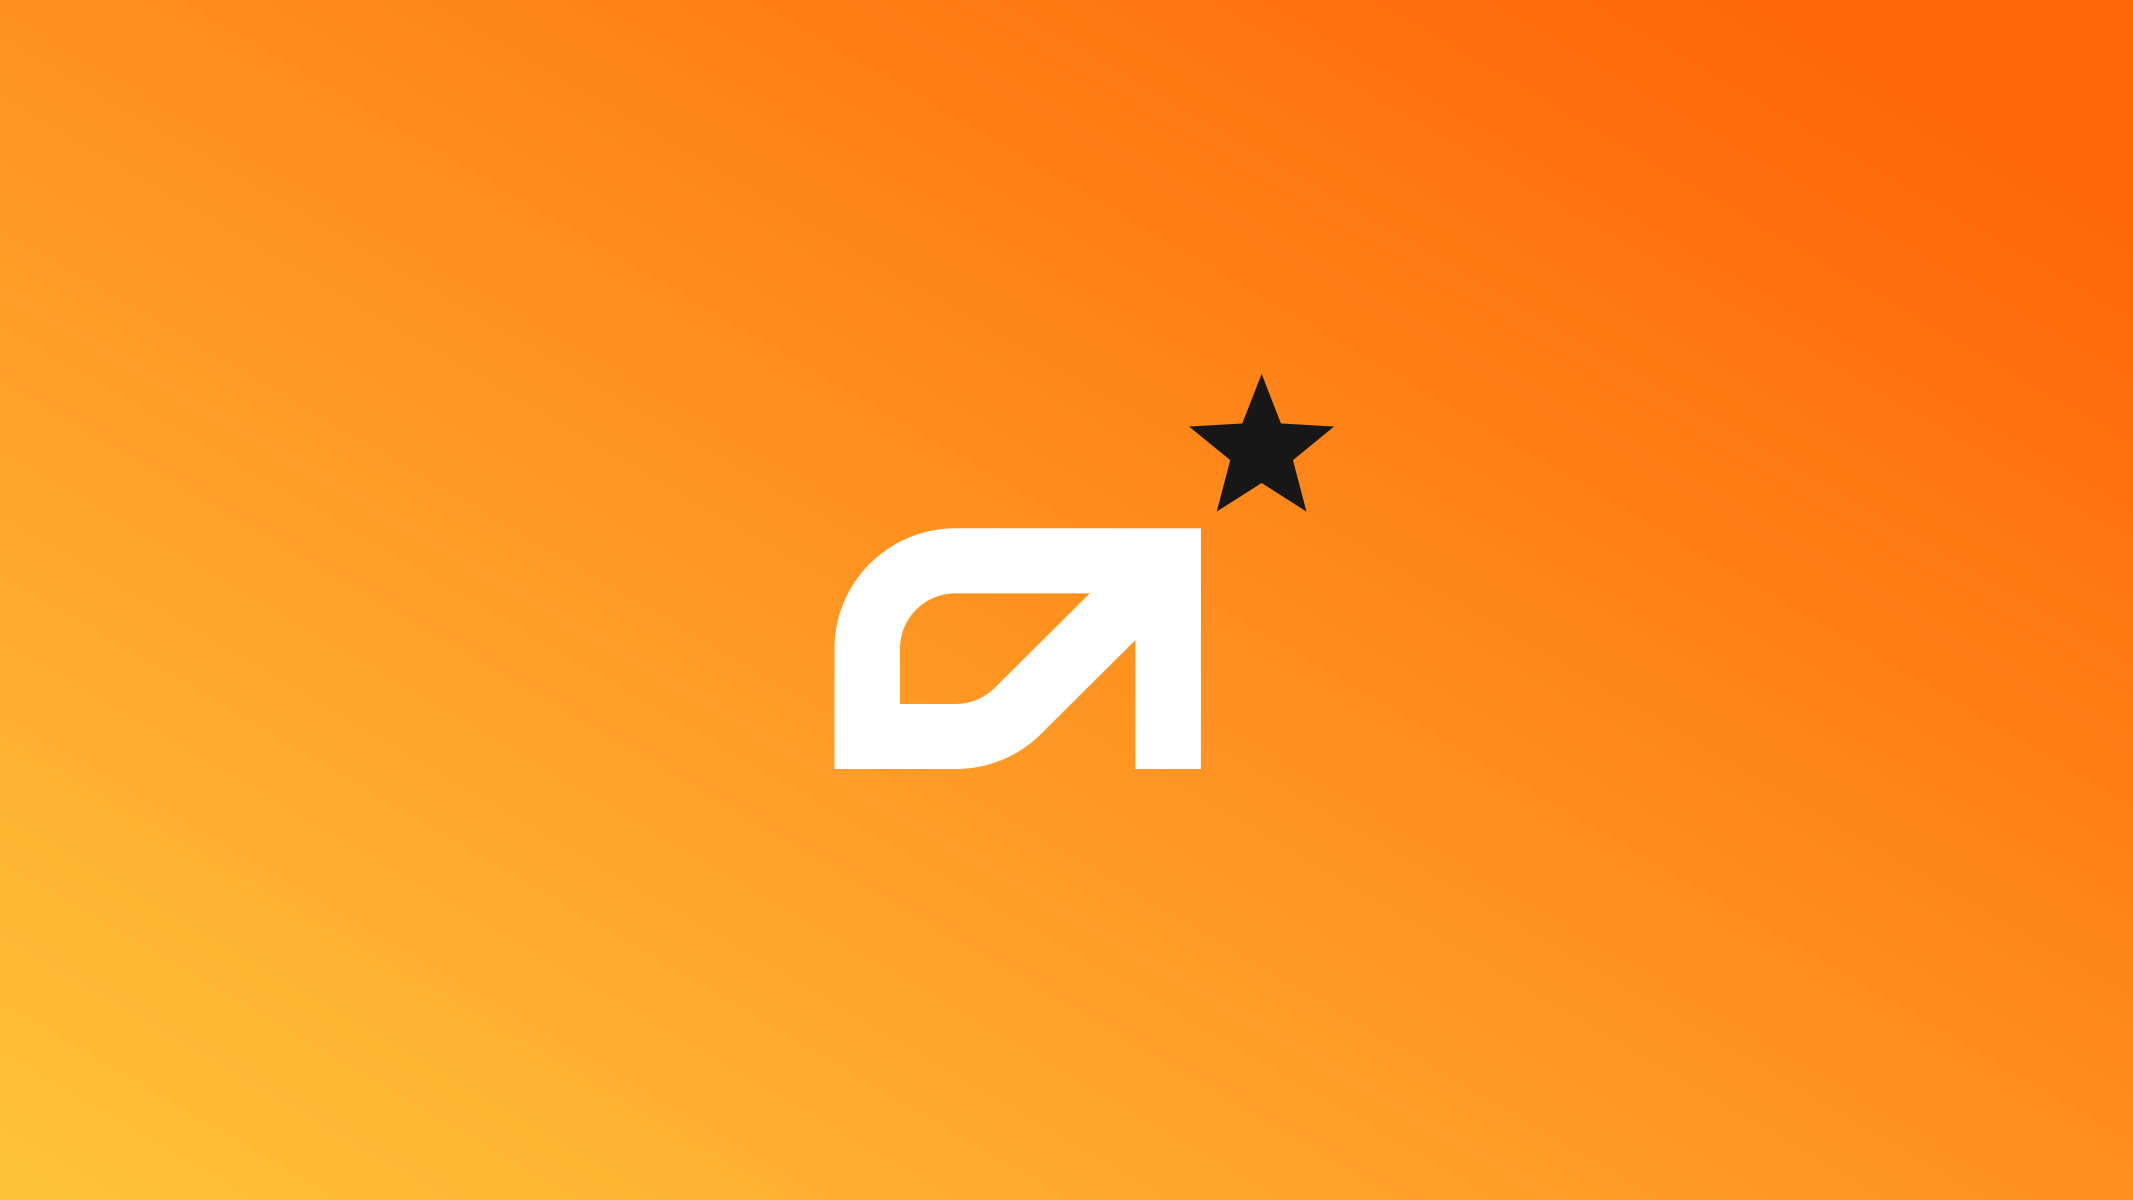 1008560 free astro gaming wallpaper 2133x1200 for meizu